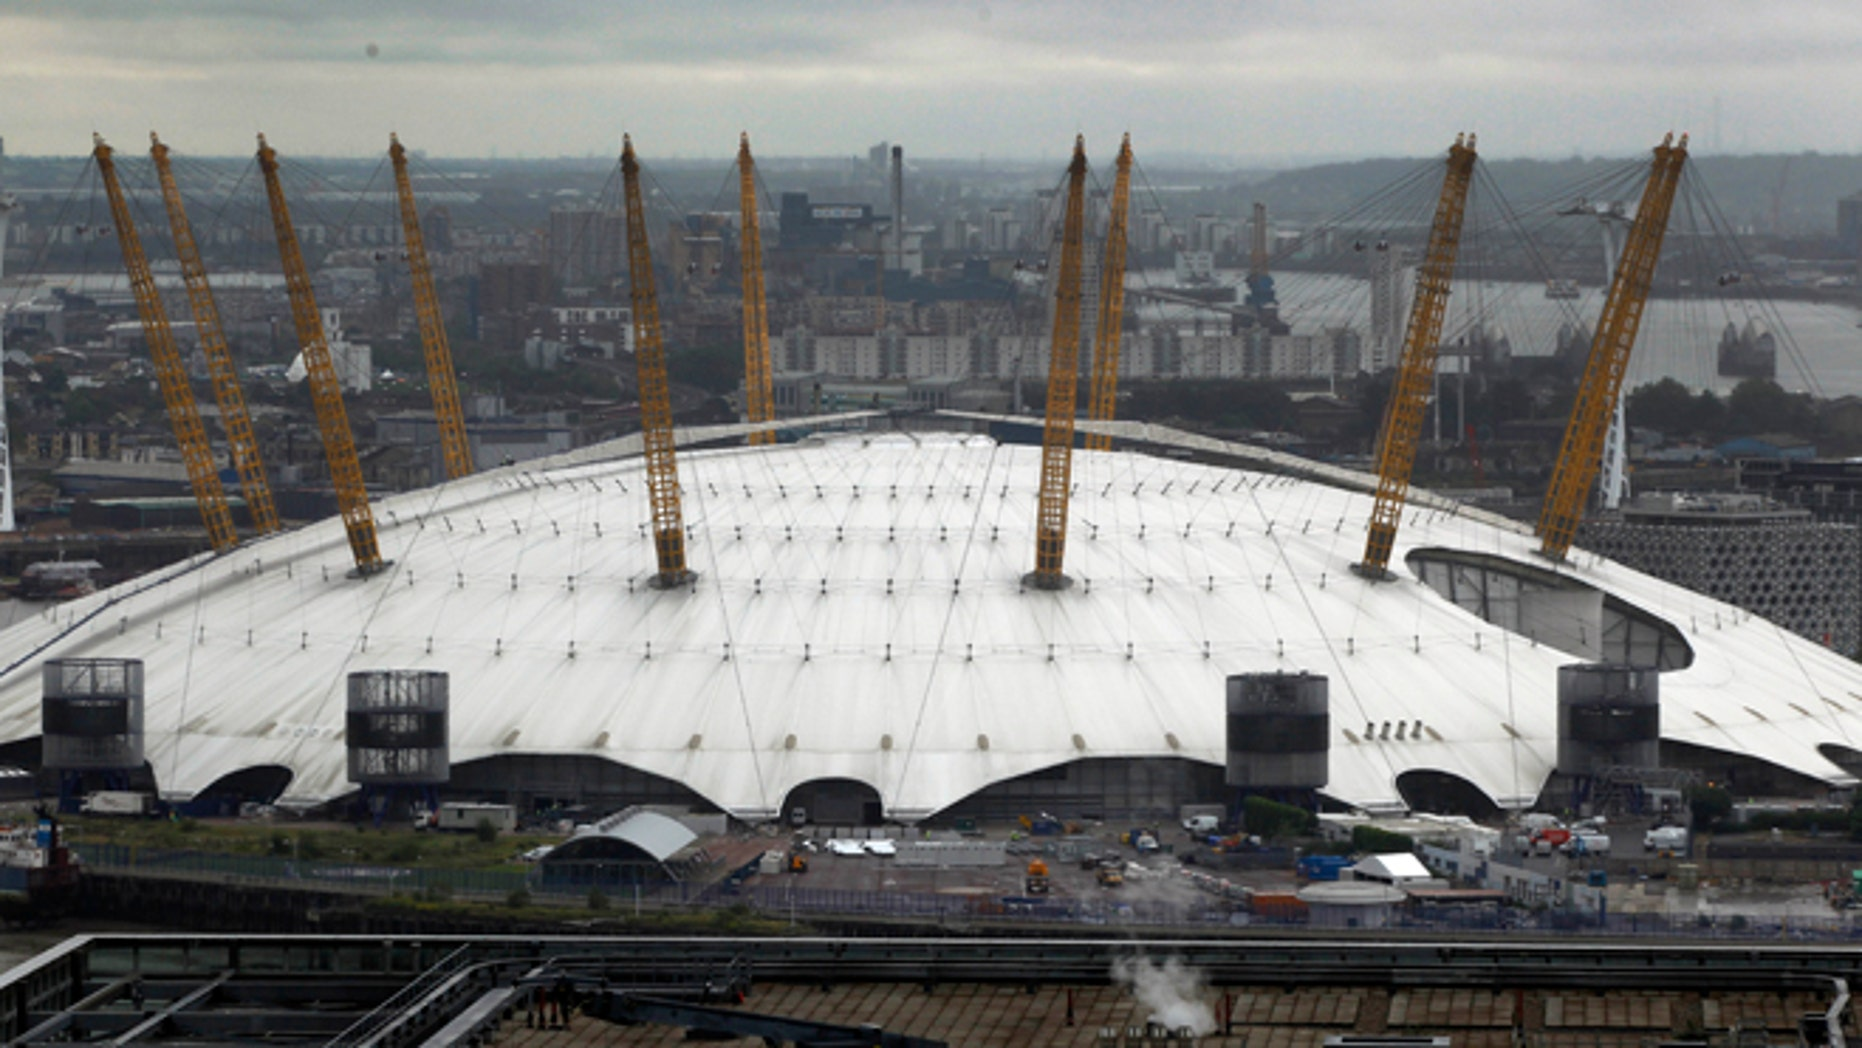 July 3, 2012: Scaling the top of the giant dome that houses the O2 entertainment center and hosts some Olympic competitions could be London's equivalent of climbing the Sydney Harbor Bridge.